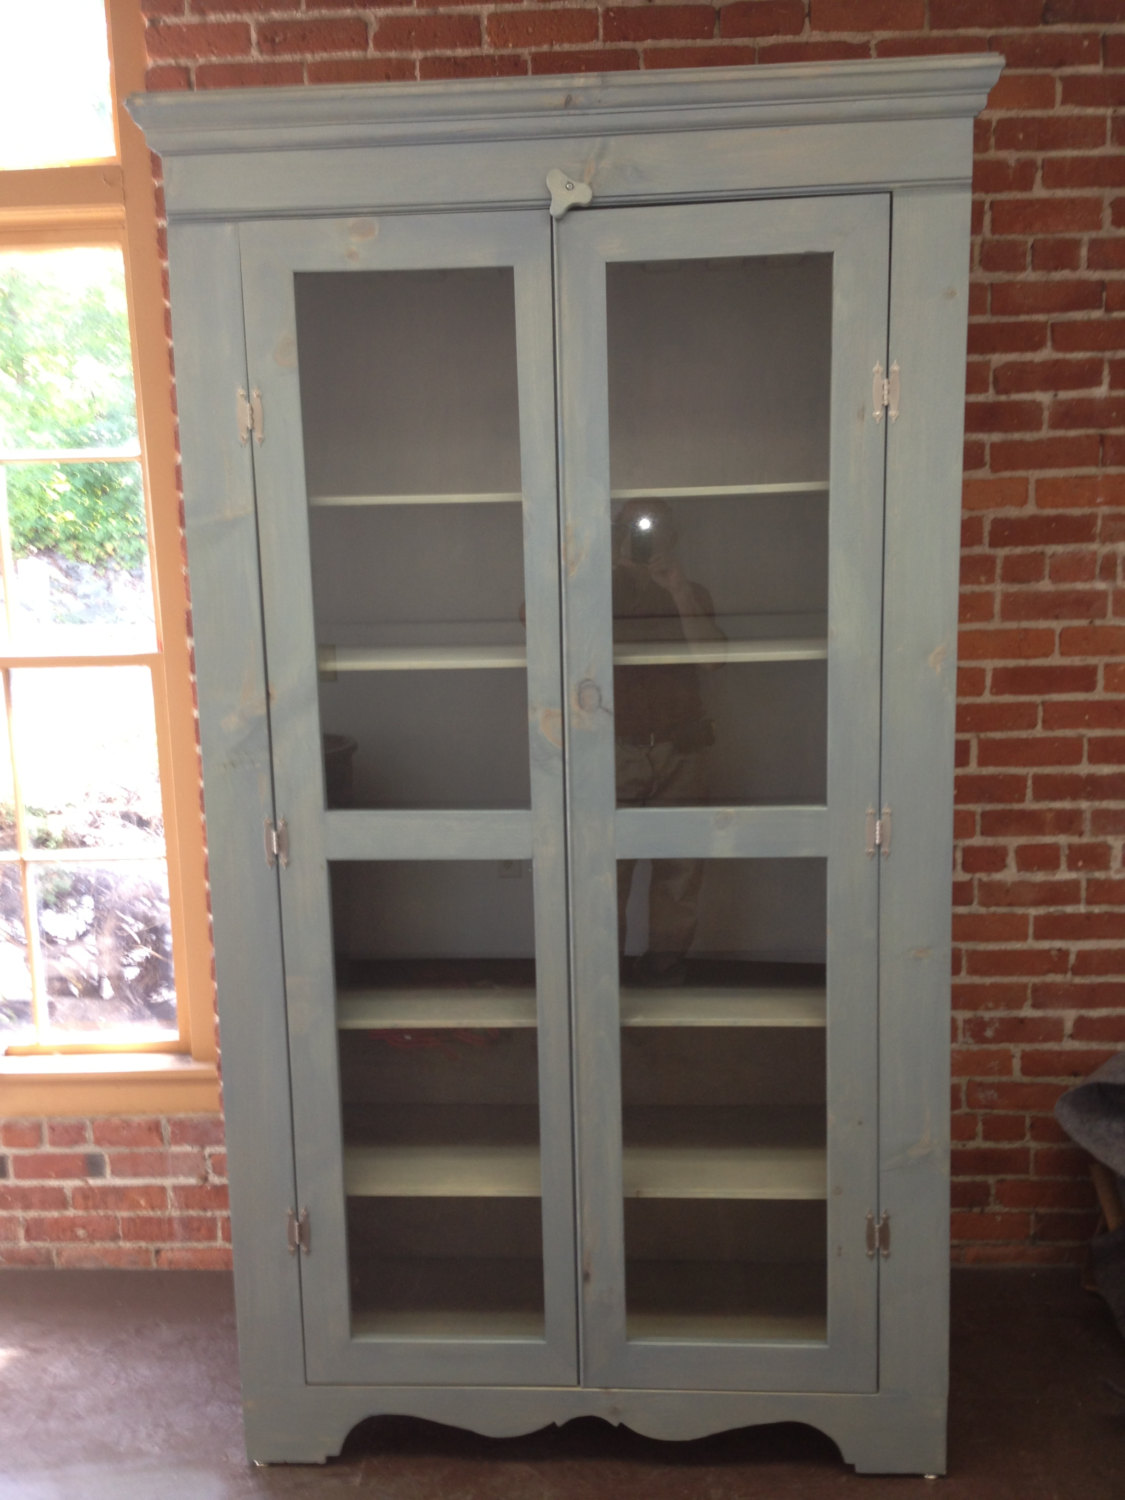 Display Cabinet Or Hutch Wine Rack And Ample Storage Custom Dimensions Local Pine